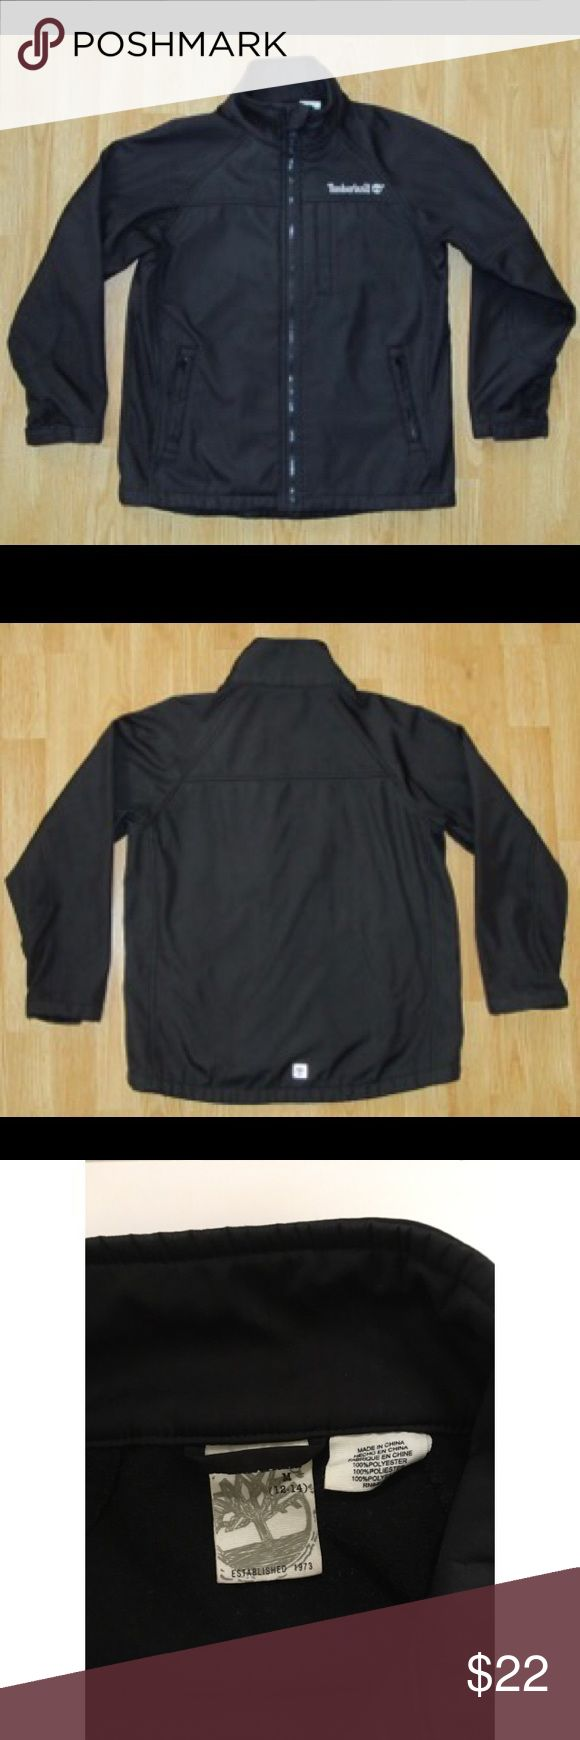 "Timberland black Jacket coat boys 12-14 Very nice Timberland jacket/coat in boys size M 12-14.  Black.  Full zip front covers the neck.  Zip pockets. Velcro on sleeves.  Zip pockets. Fleece lined.  Texture is like a very thick nylon. Polyester.  Excellent pre-owned condition.  Measures about 23"" long from top shoulder. Timberland Jackets & Coats"